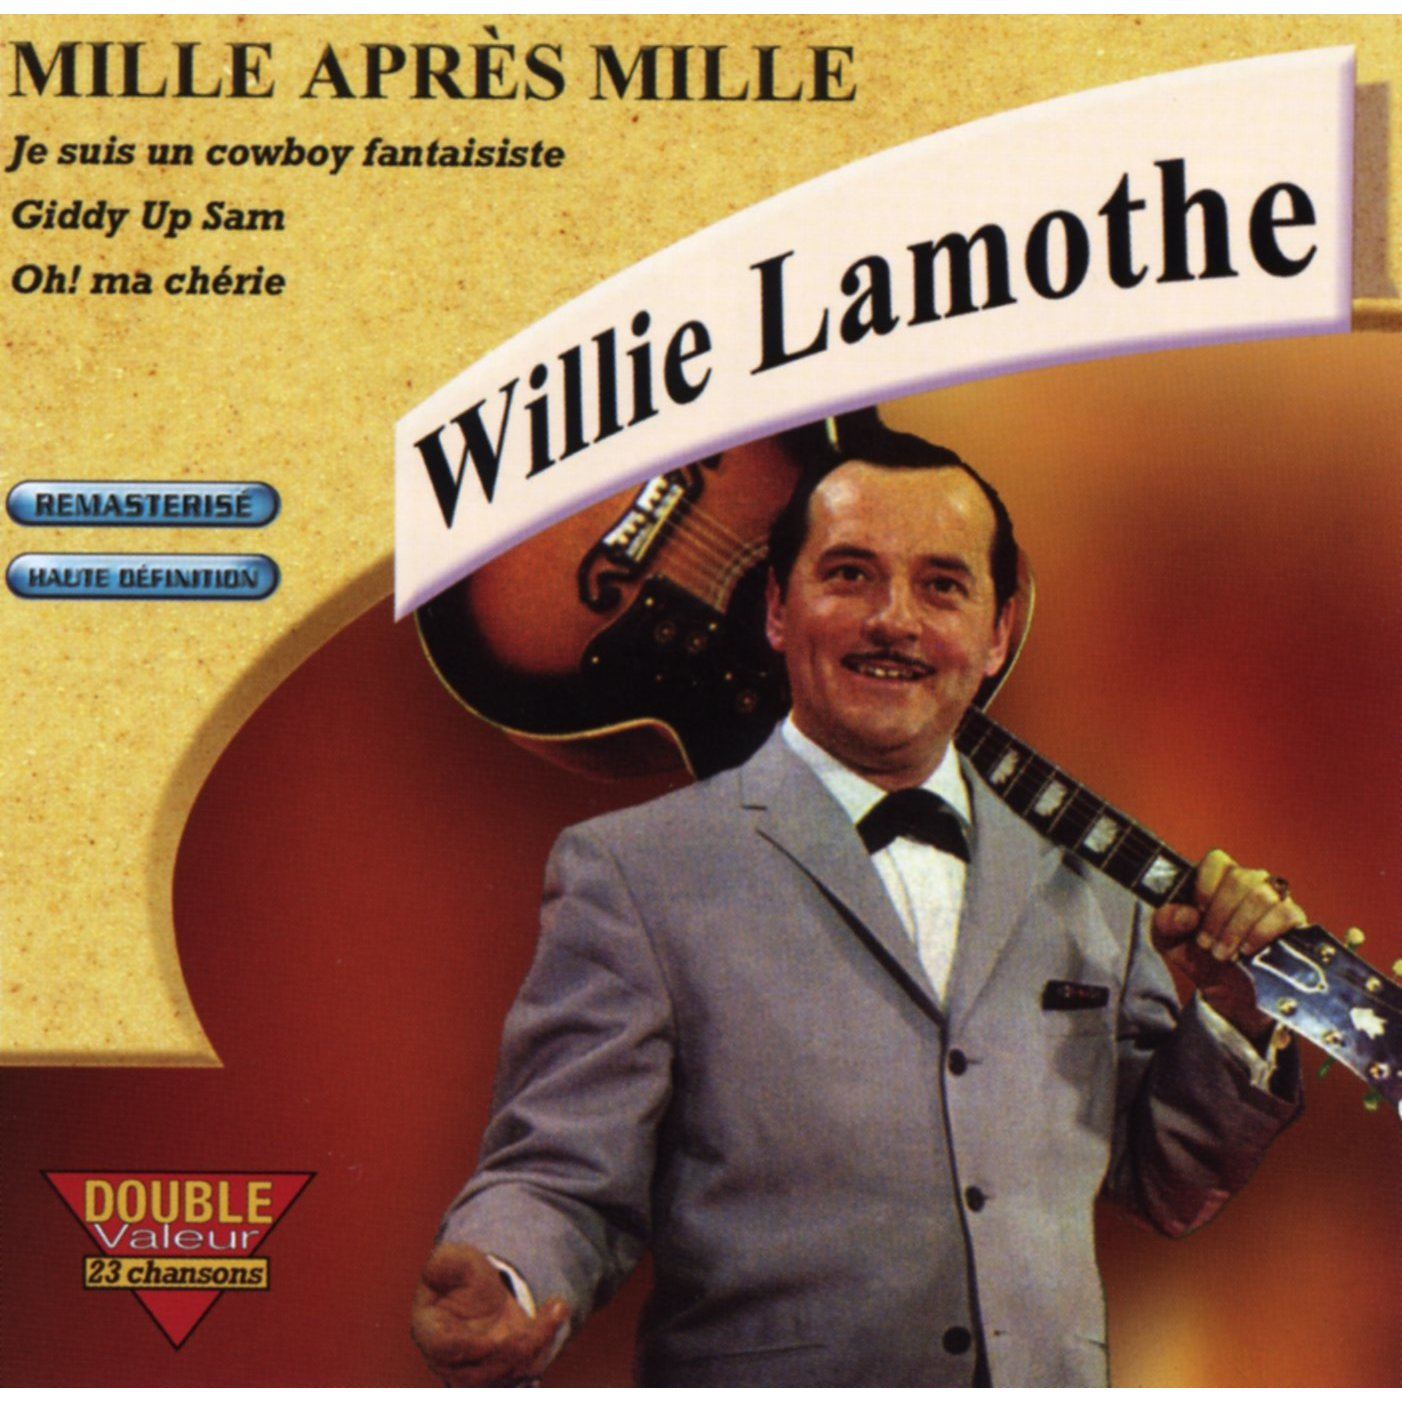 Willie Lamothe Willie Lamothe new picture